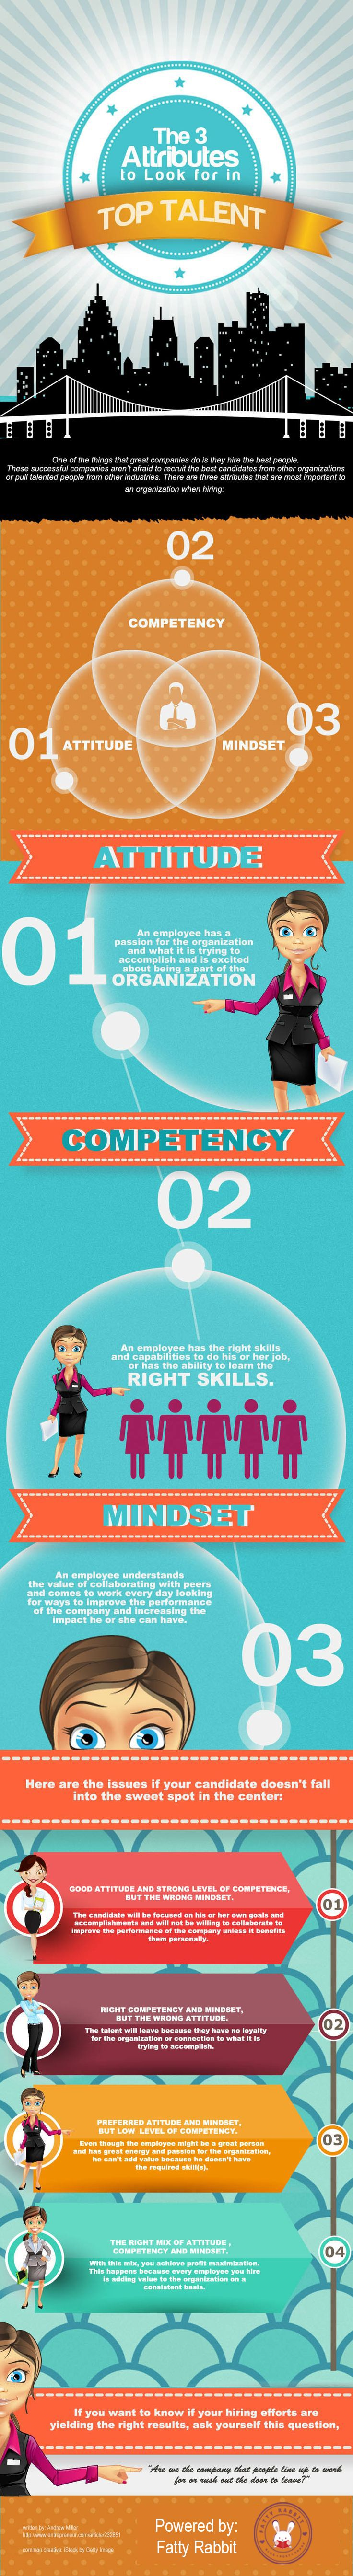 The 3 Attributes to look for in Top Talent  #medium #business #strategy